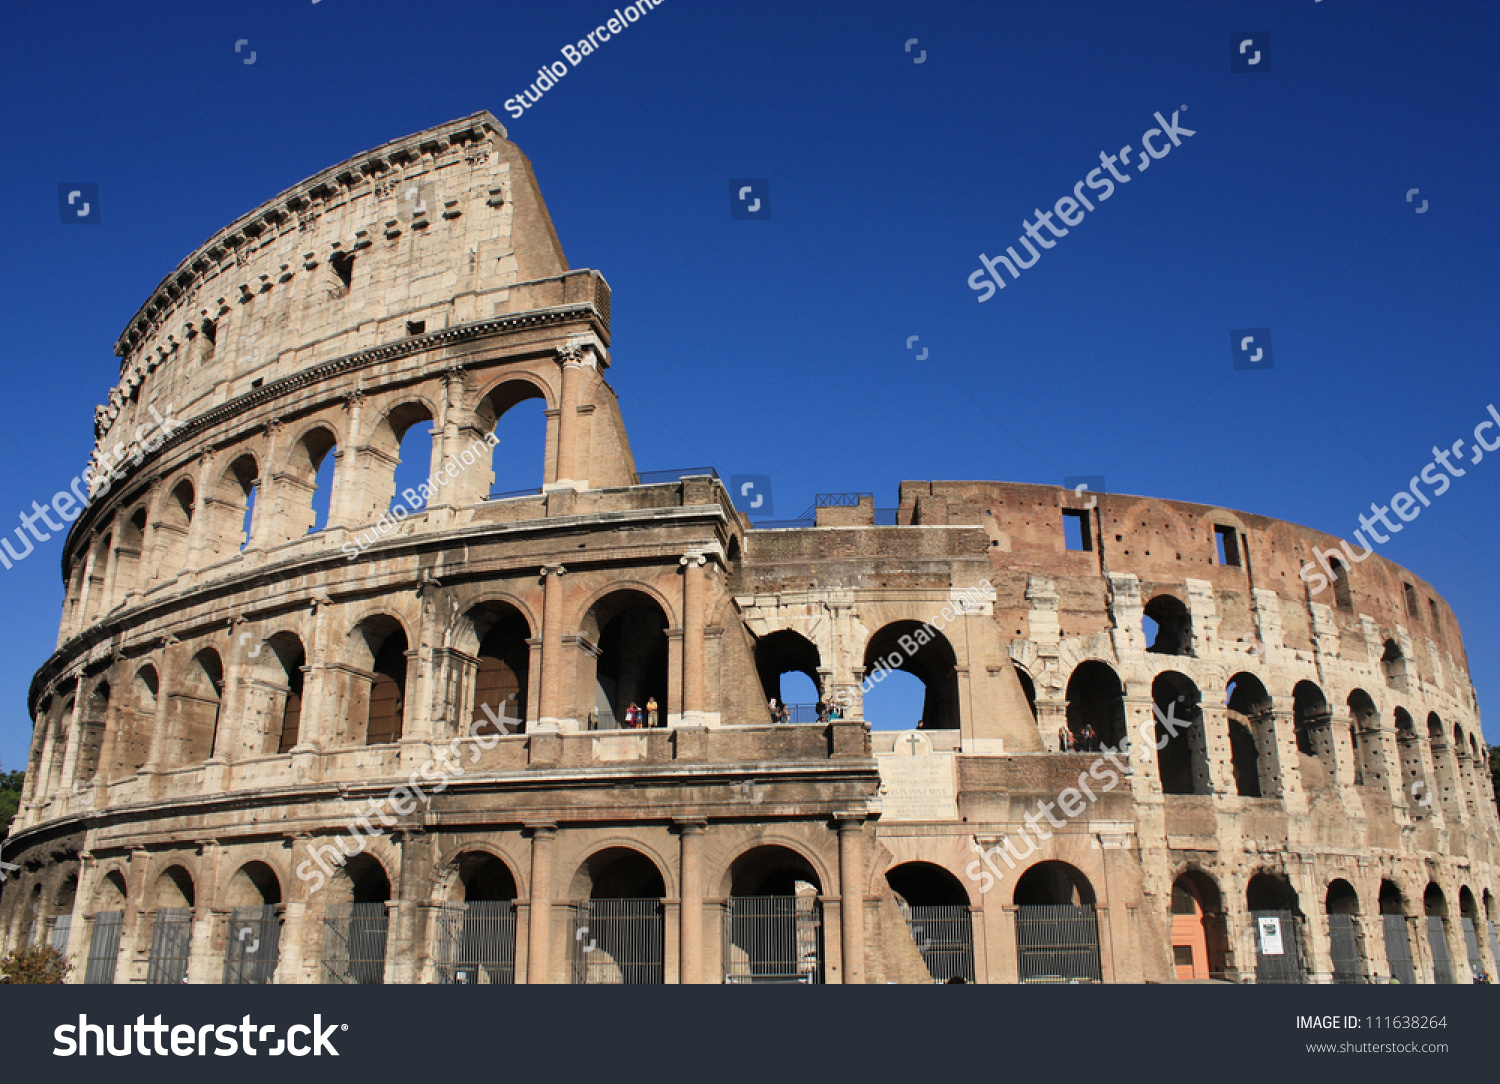 Colosseum Rome Italy Ancient Architecture Stock Photo 111638264